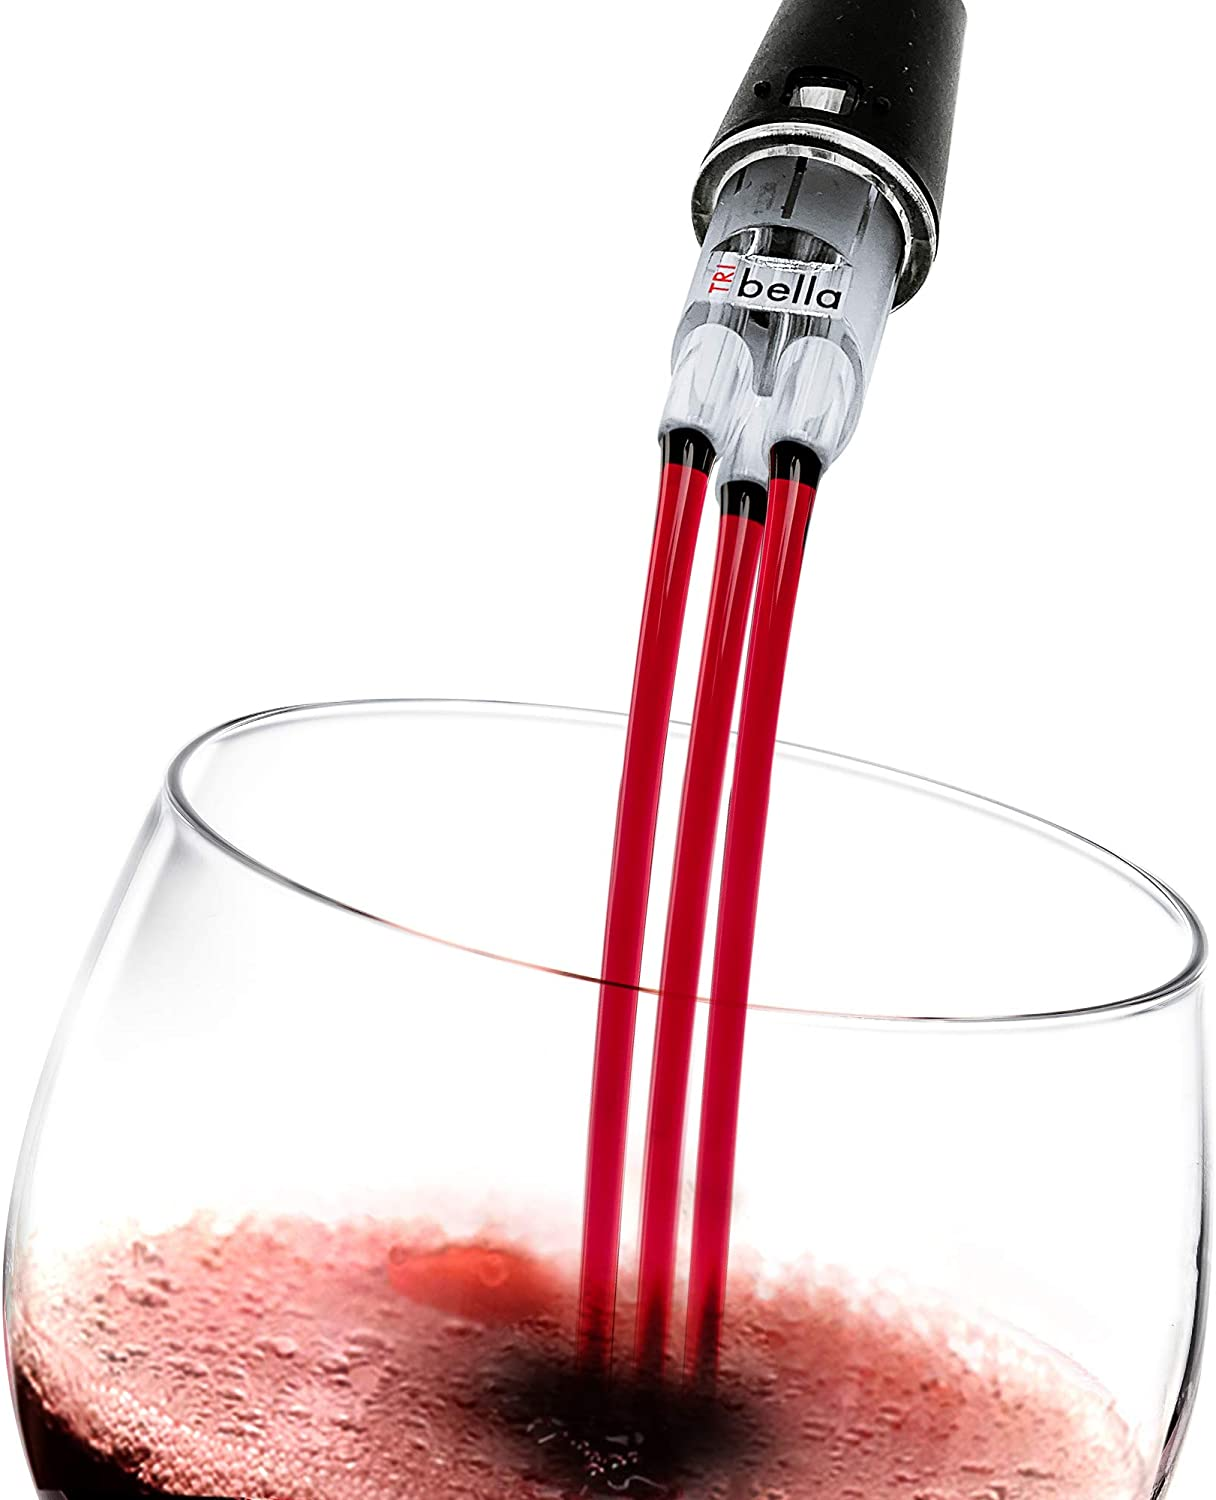 Wine Aerator with Single-Injected Polycarbonate Spouts, Handmade Easy-to-Use, No-Drip Wine Pouring Device, Red Wine Decanter, Wine Pouring Accessory, Air Speed - TRIbella